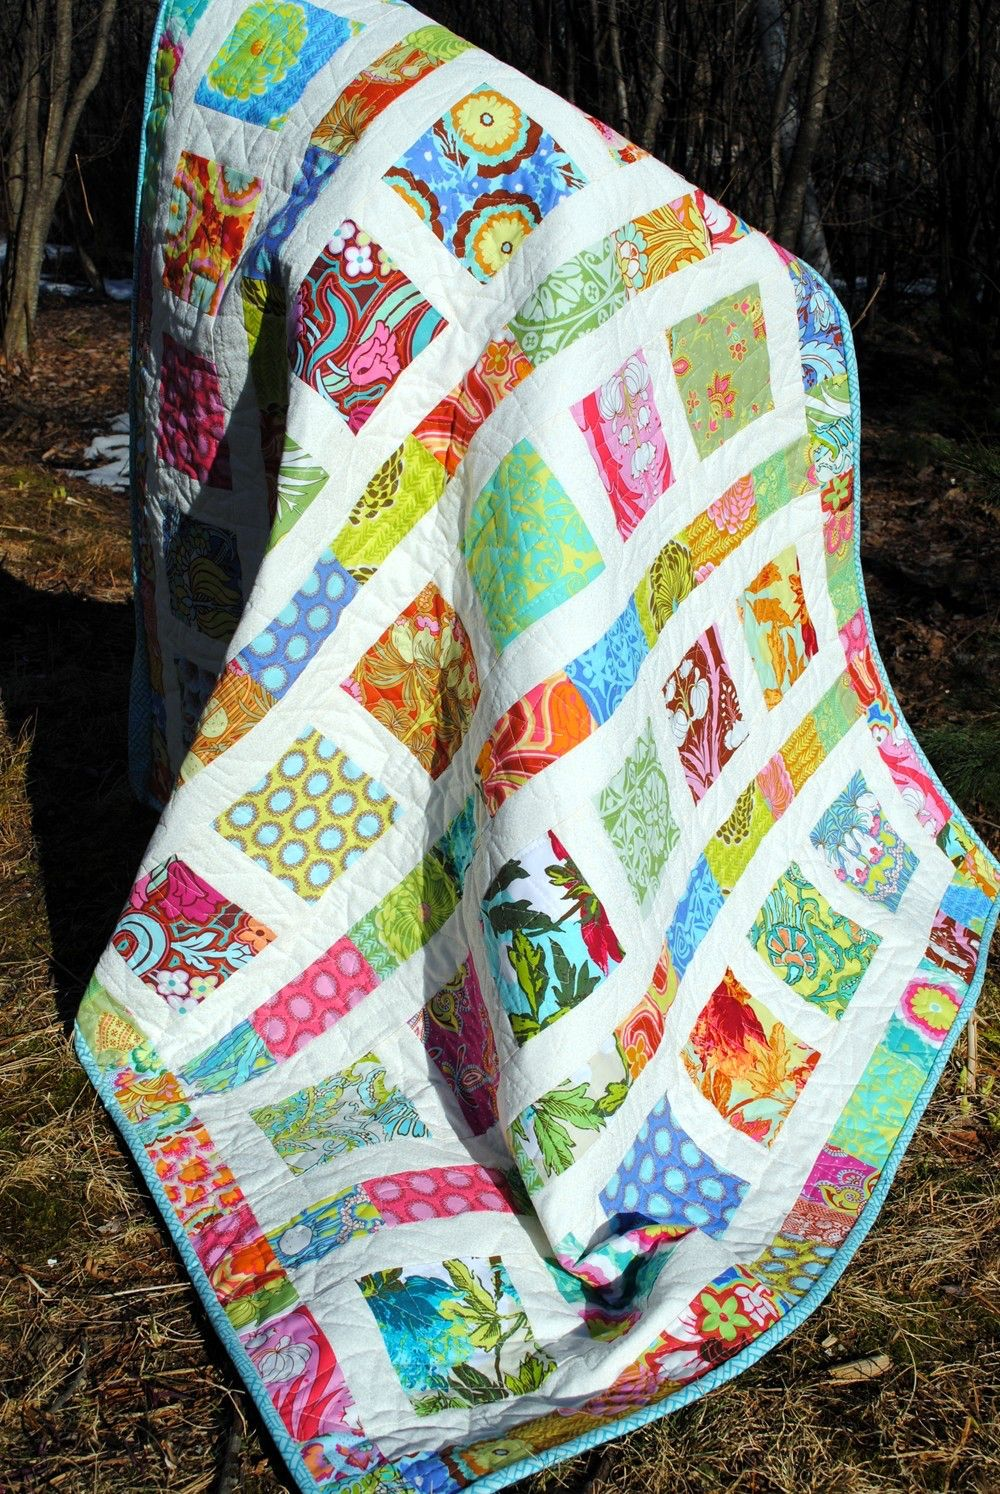 Baby QUILT PATTERN....Quick and Easy...2 Charm Square Packs, Flowers in the Sunshine by sweetjane on Etsy https://www.etsy.com/listing/84726098/baby-quilt-patternquick-and-easy2-charm